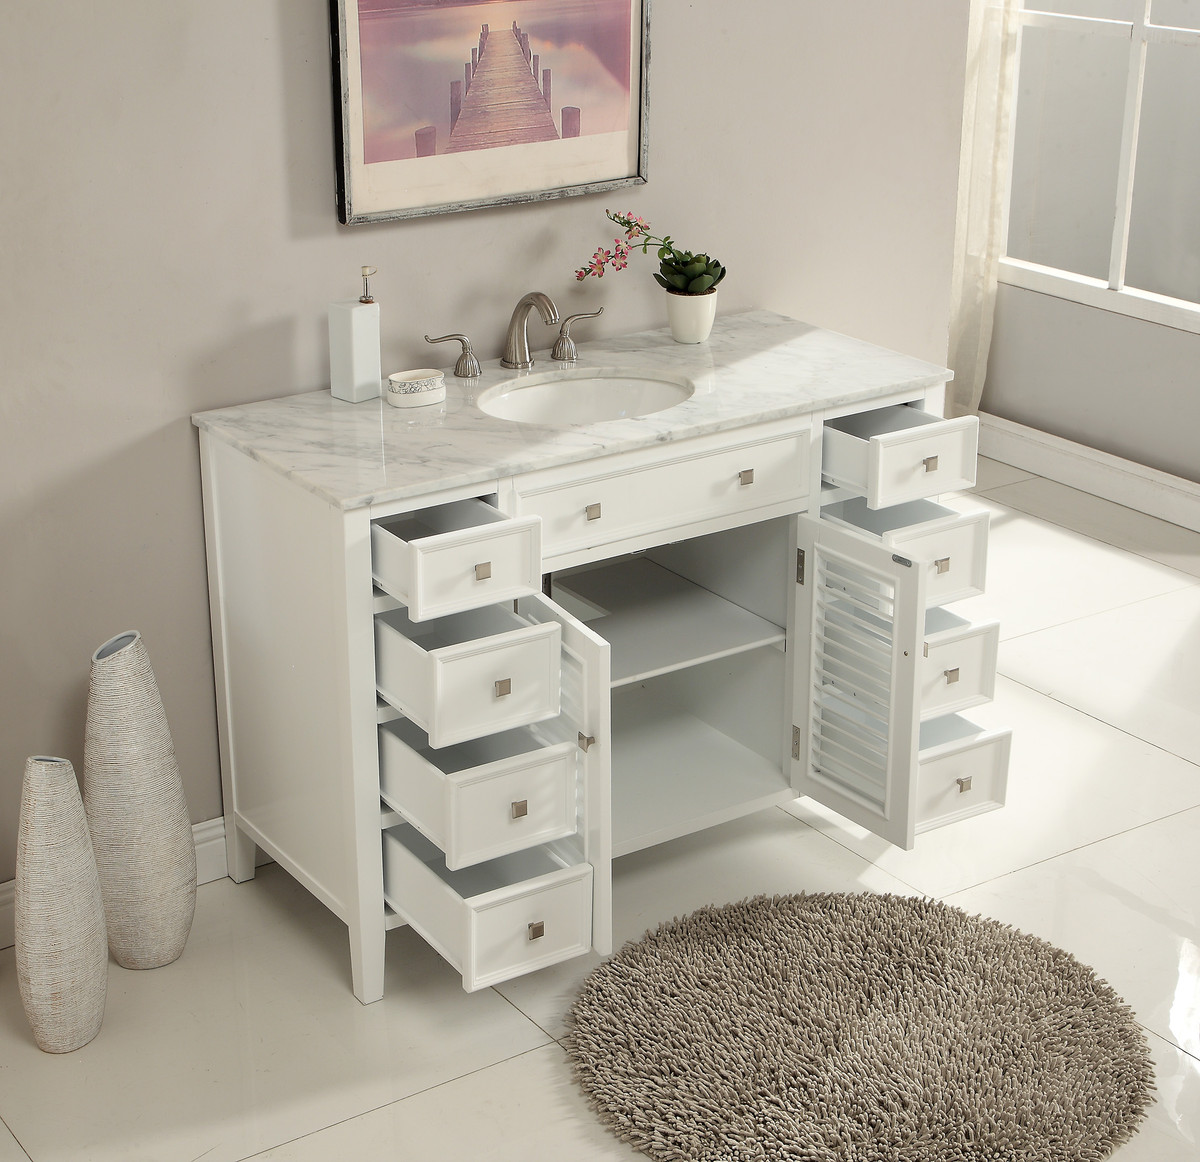 48 Inch Bathroom Vanity Coastal Cottage Beach Style Pure White Color Wx21 Dx35 H S112848wk